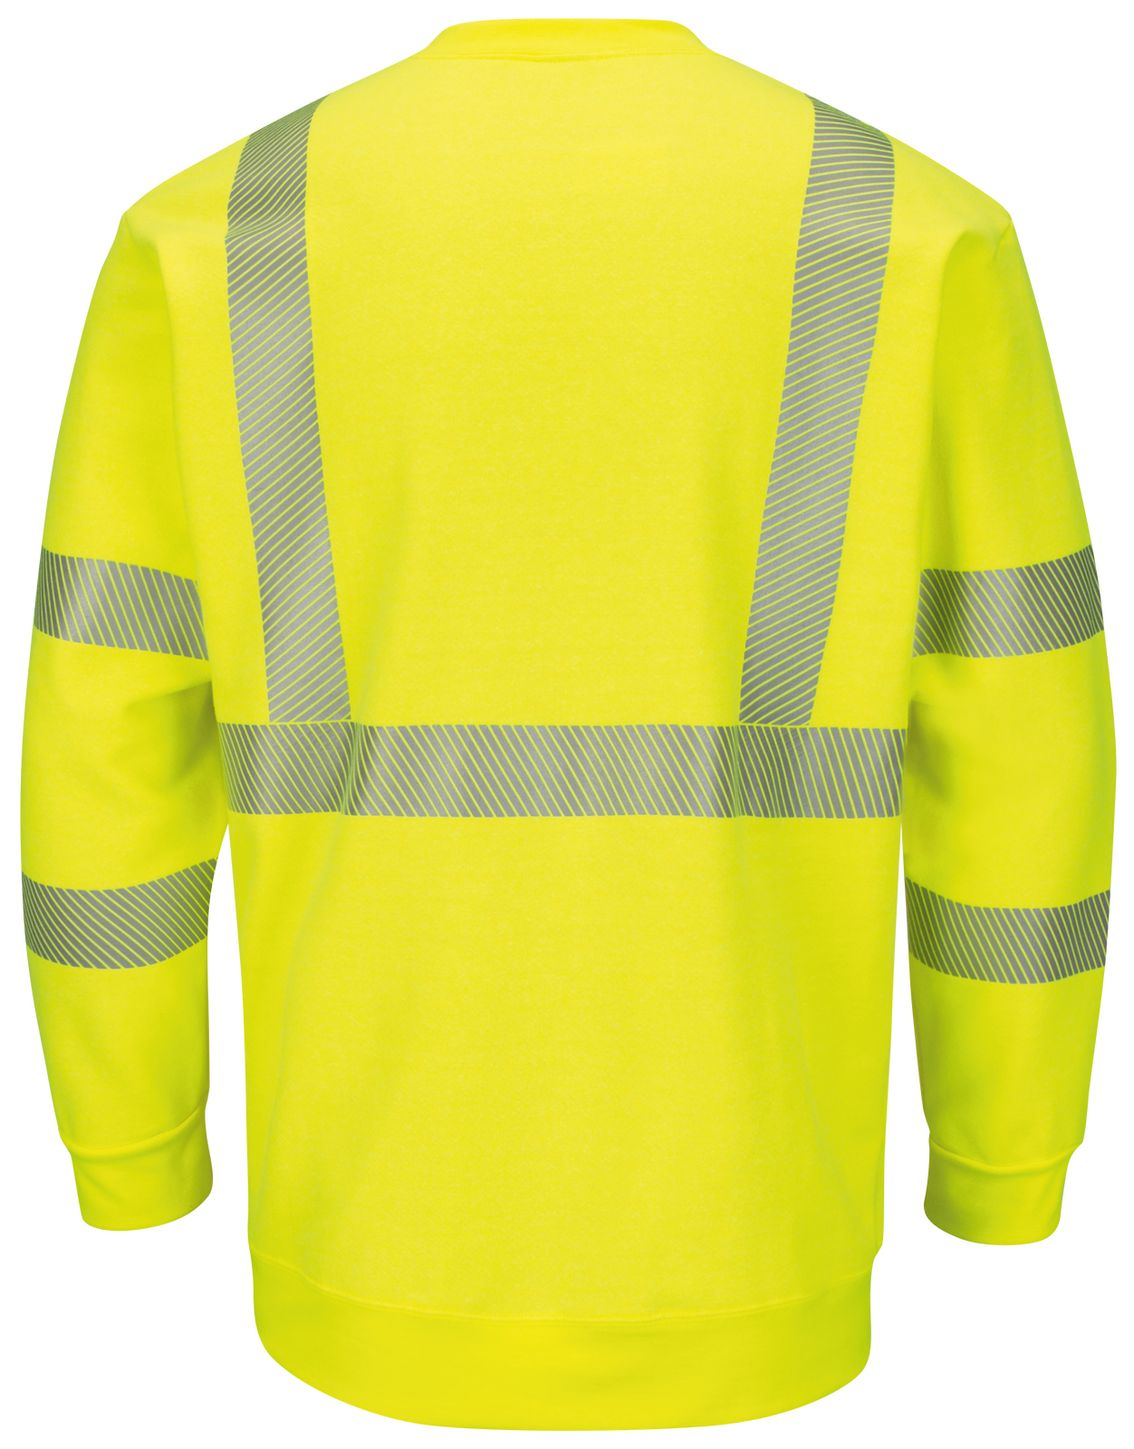 bulwark-fr-hi-visibility-sweatshirt-smc4-fleece-crewneck-yellow-green-back.jpg